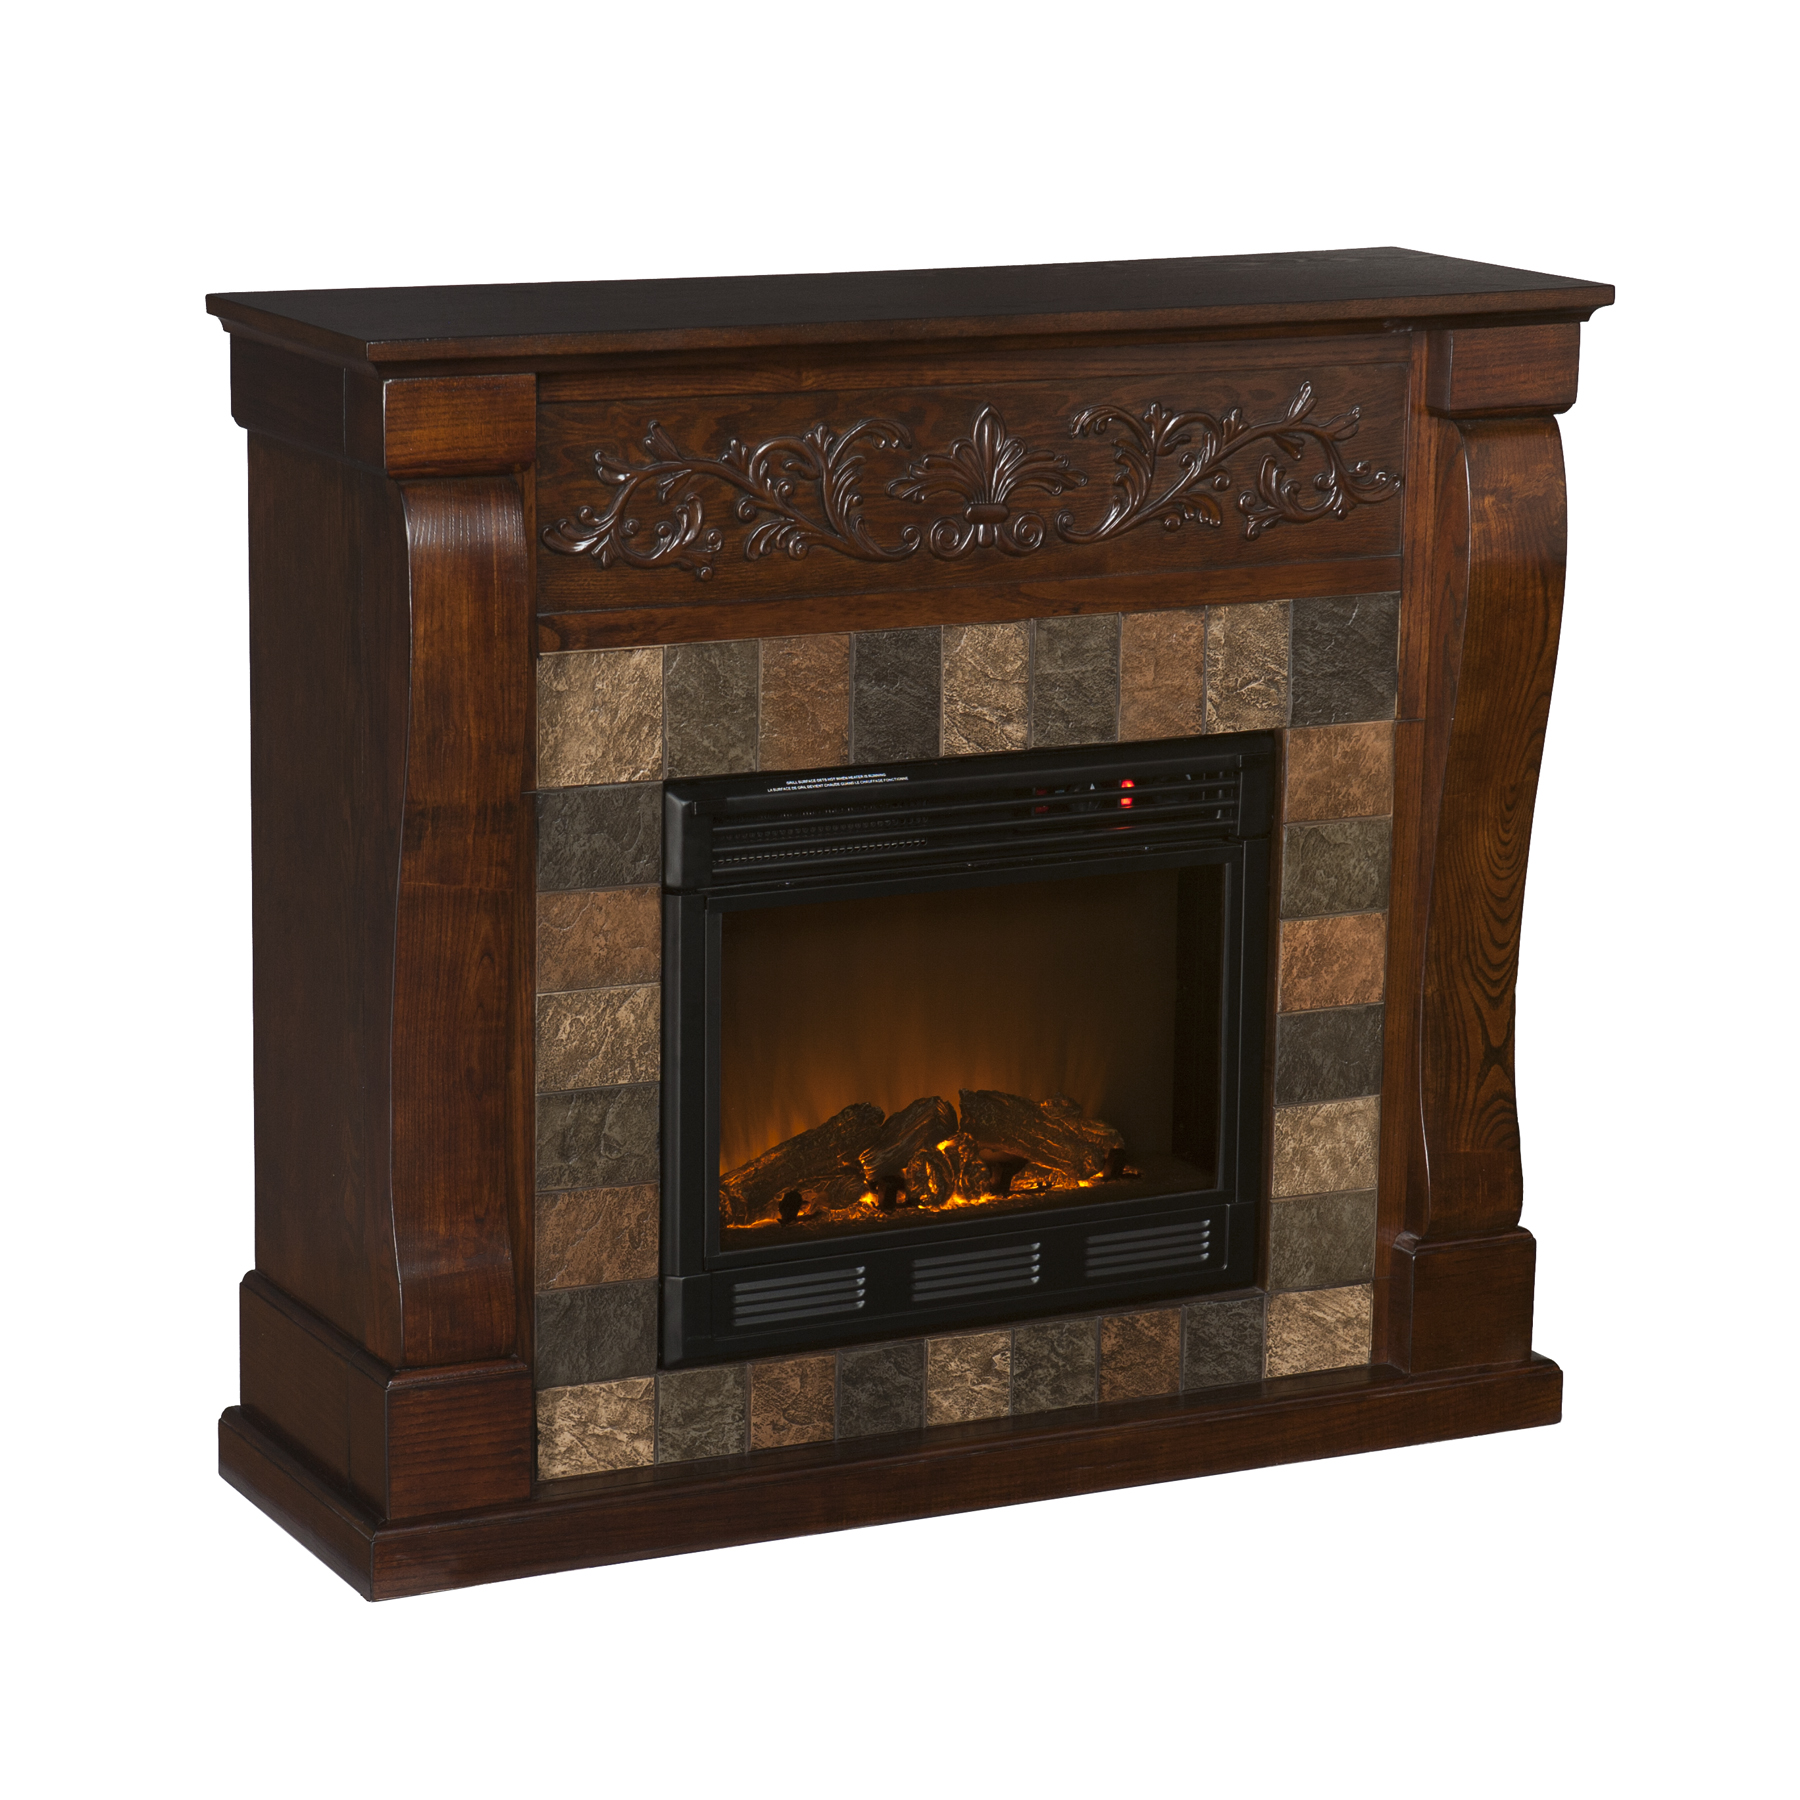 Holly Martin Calgary Electric Fireplace Espresso Holly Martin 37 054 023 6 12